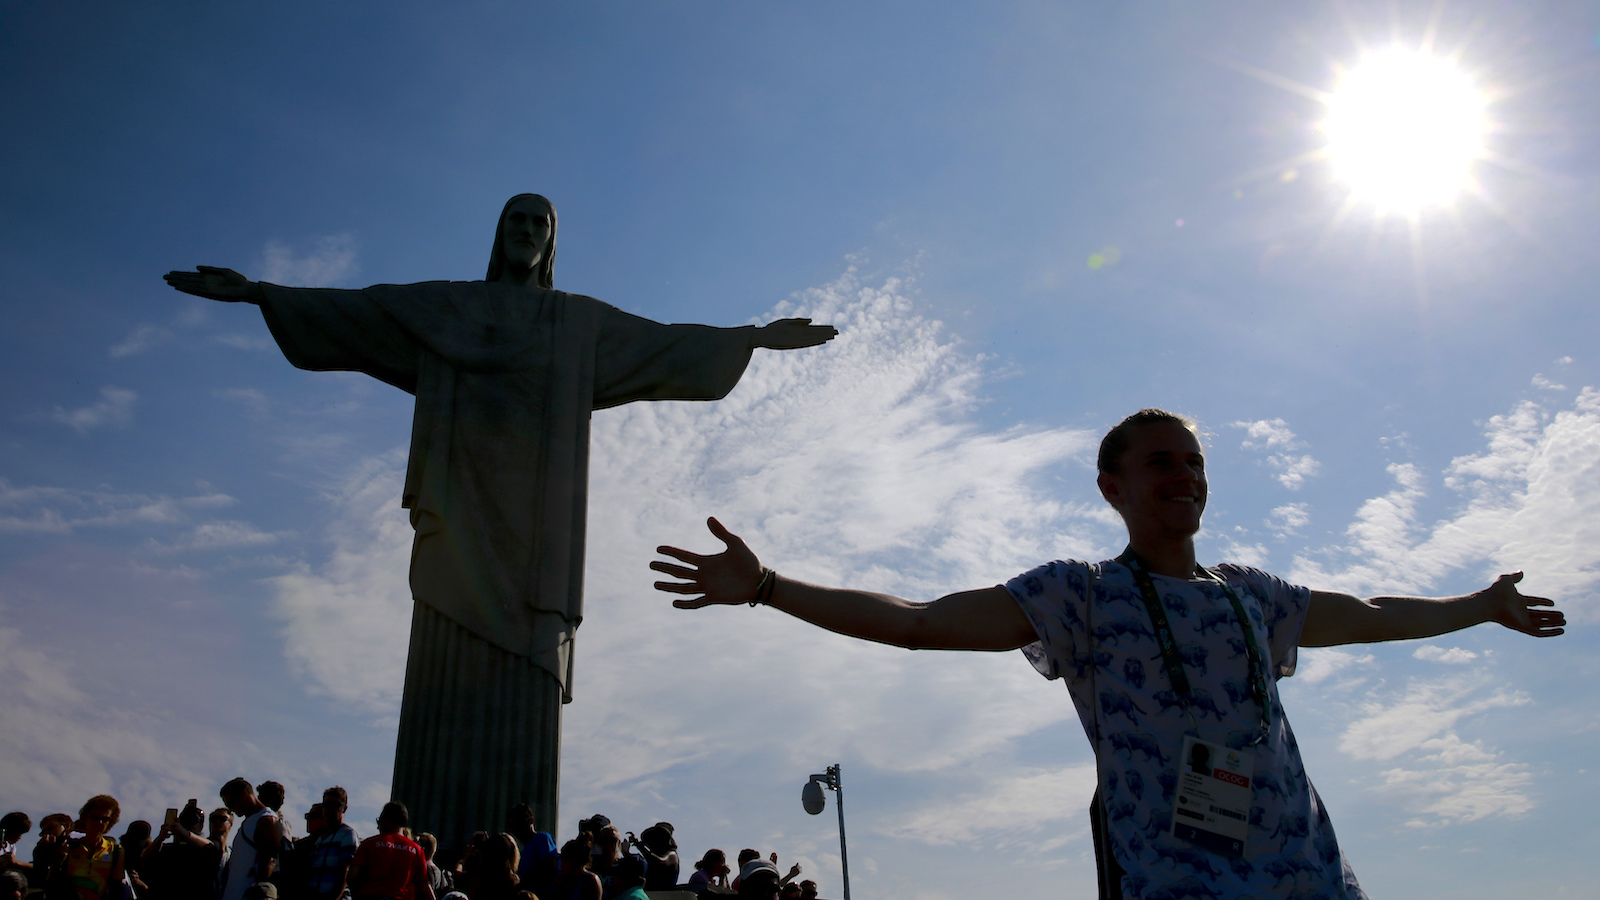 christ the redeemer religious statue